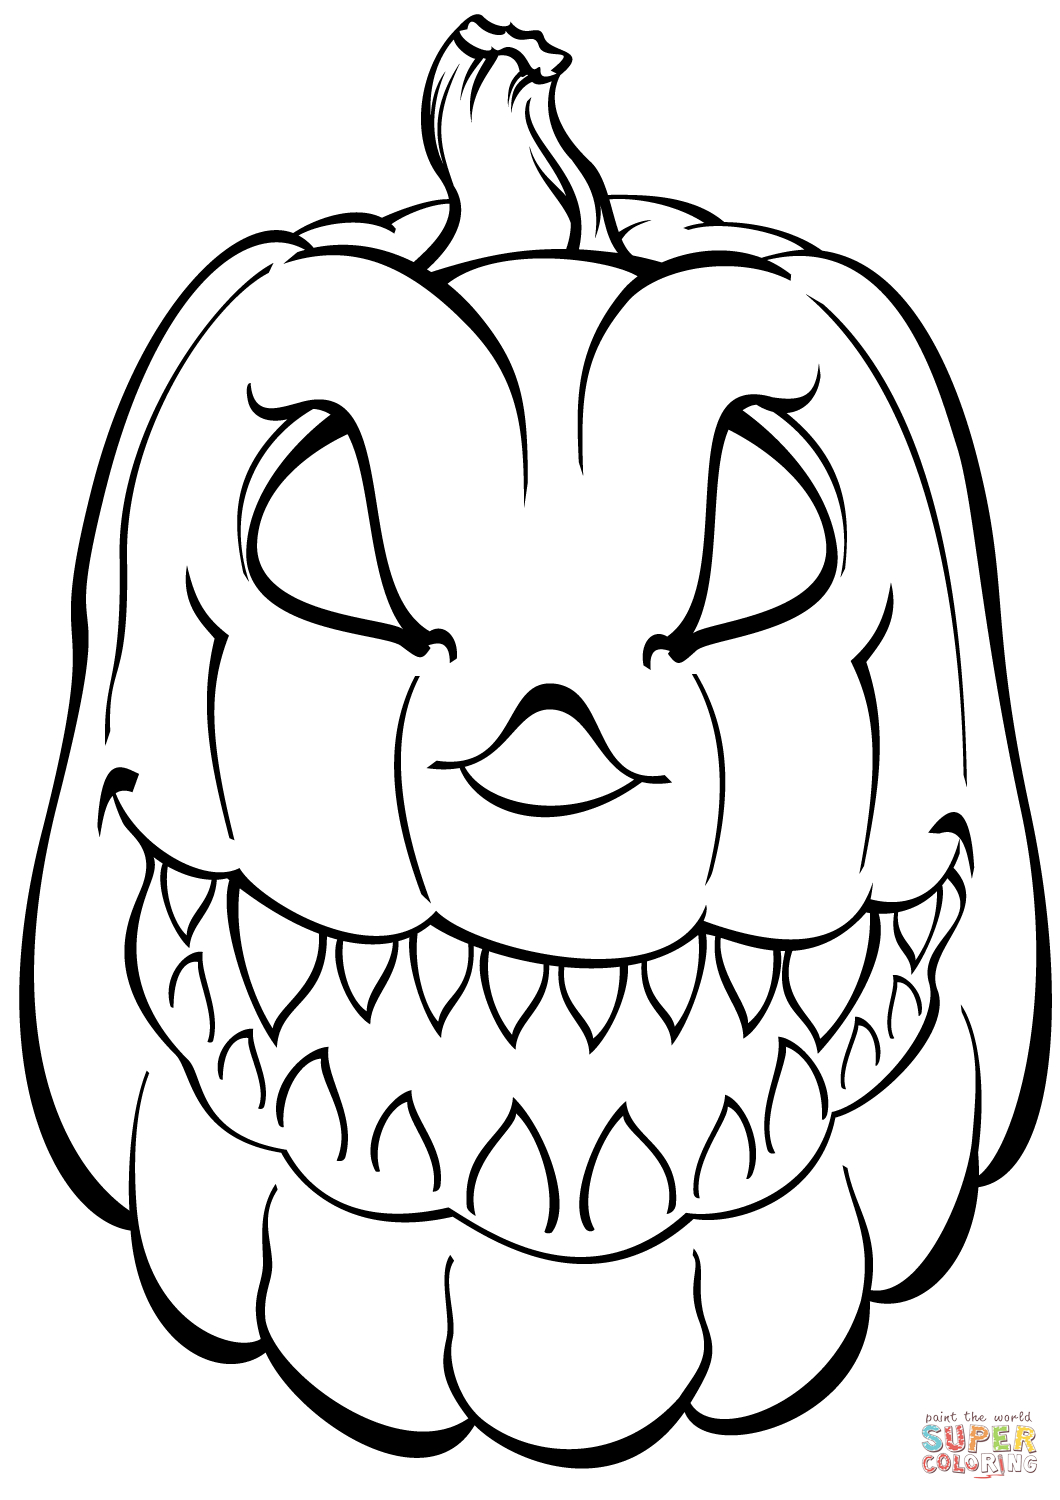 Free Scary Halloween Coloring Pages Scary Pumpkin Coloring Page Free Printable Coloring Pages